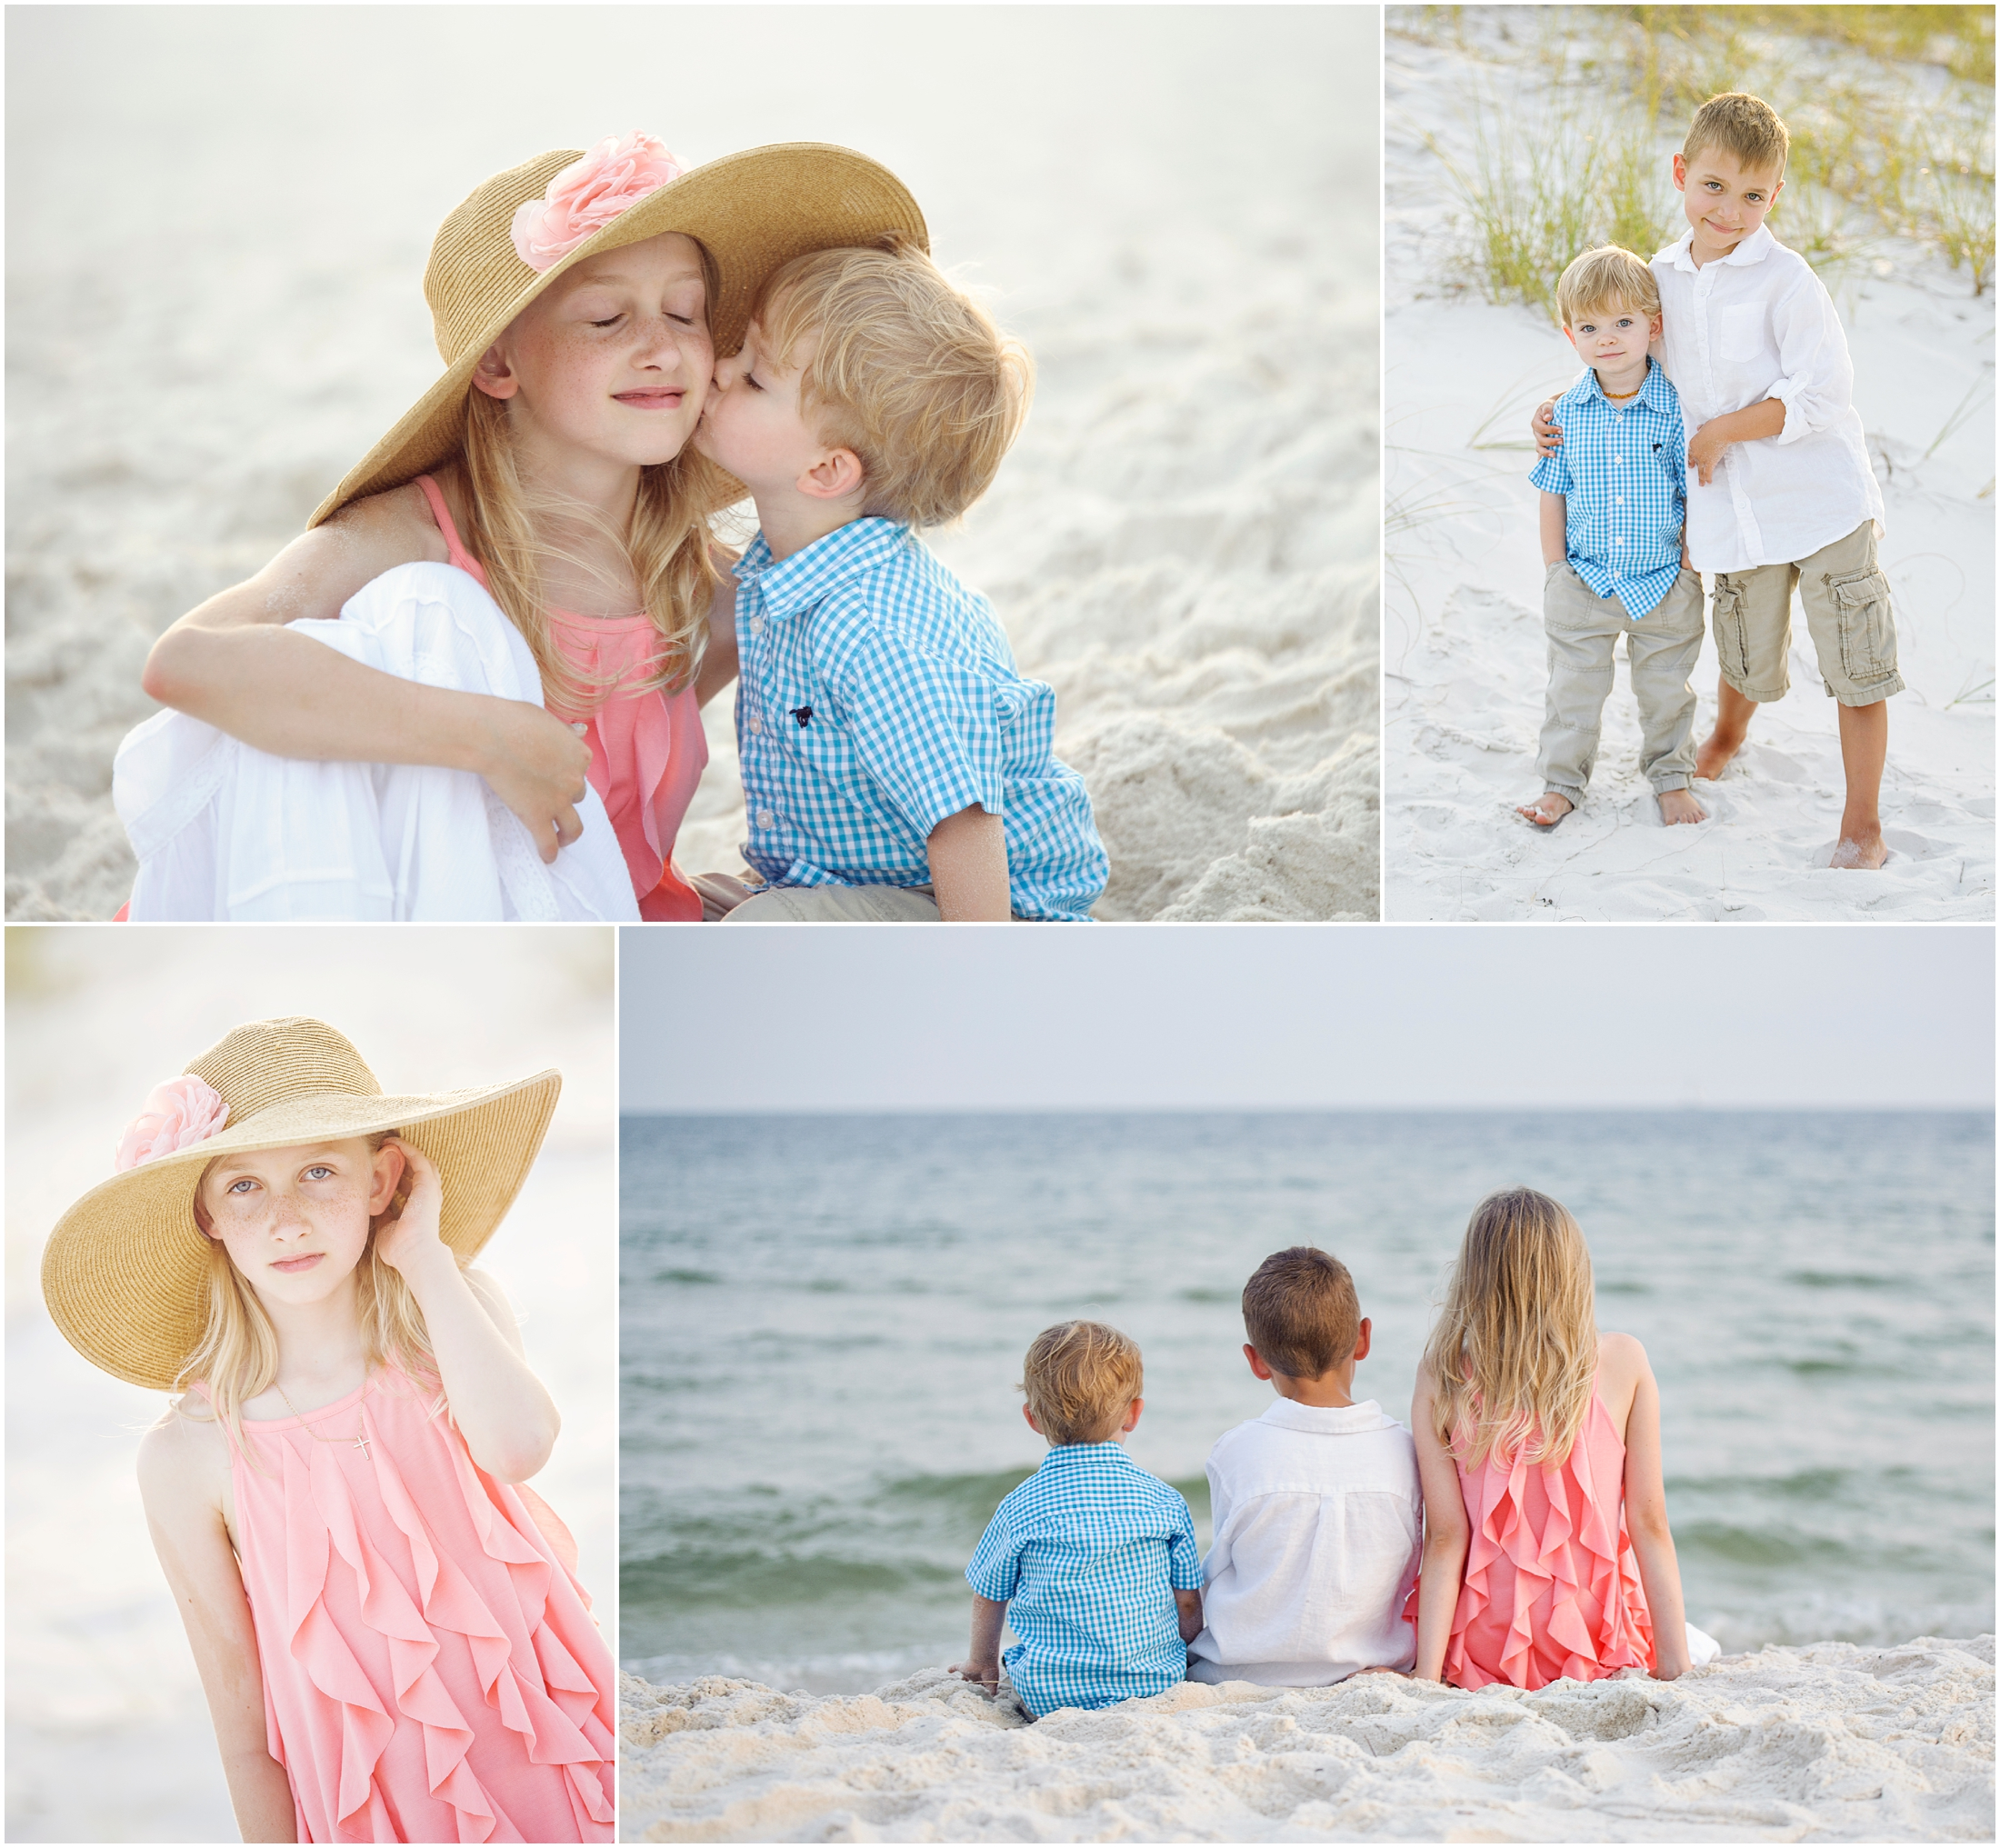 collage photos at the beach three kids